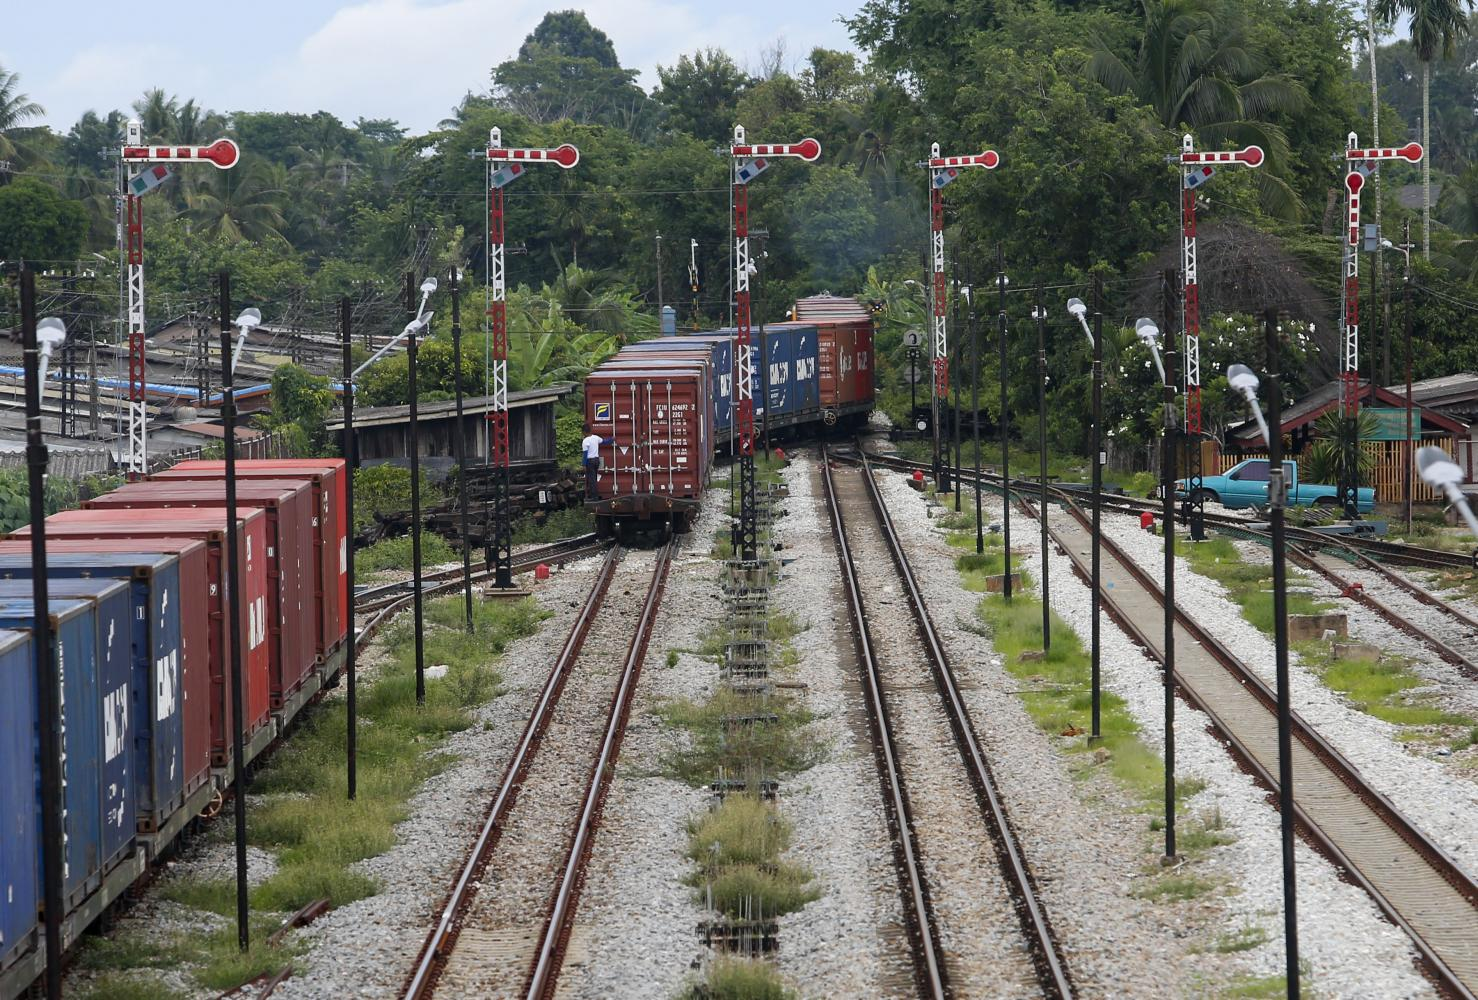 SRT planning new double track route